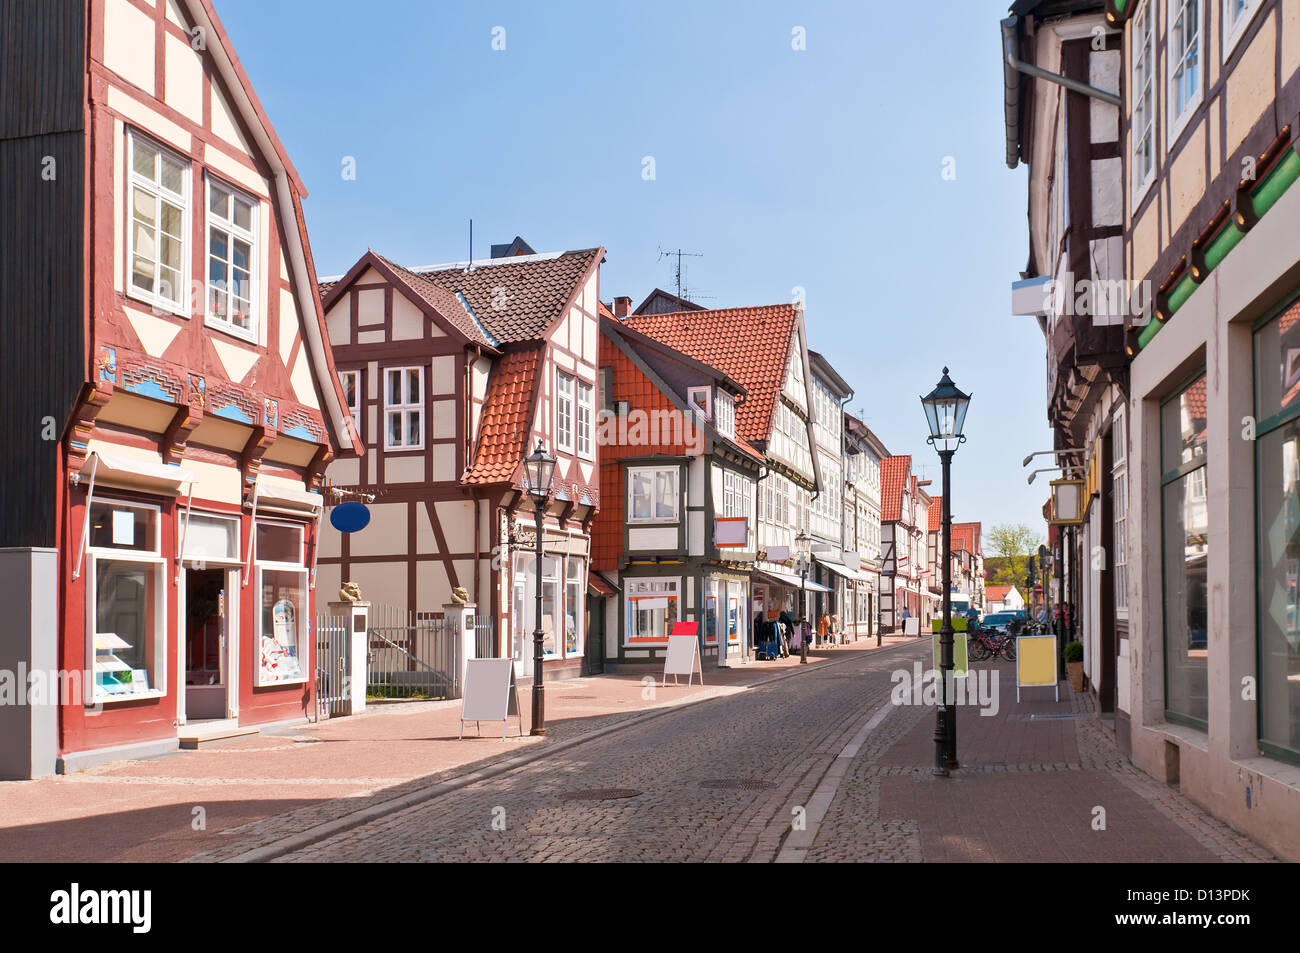 half-timber houses street in Celle, Germany - Stock Image